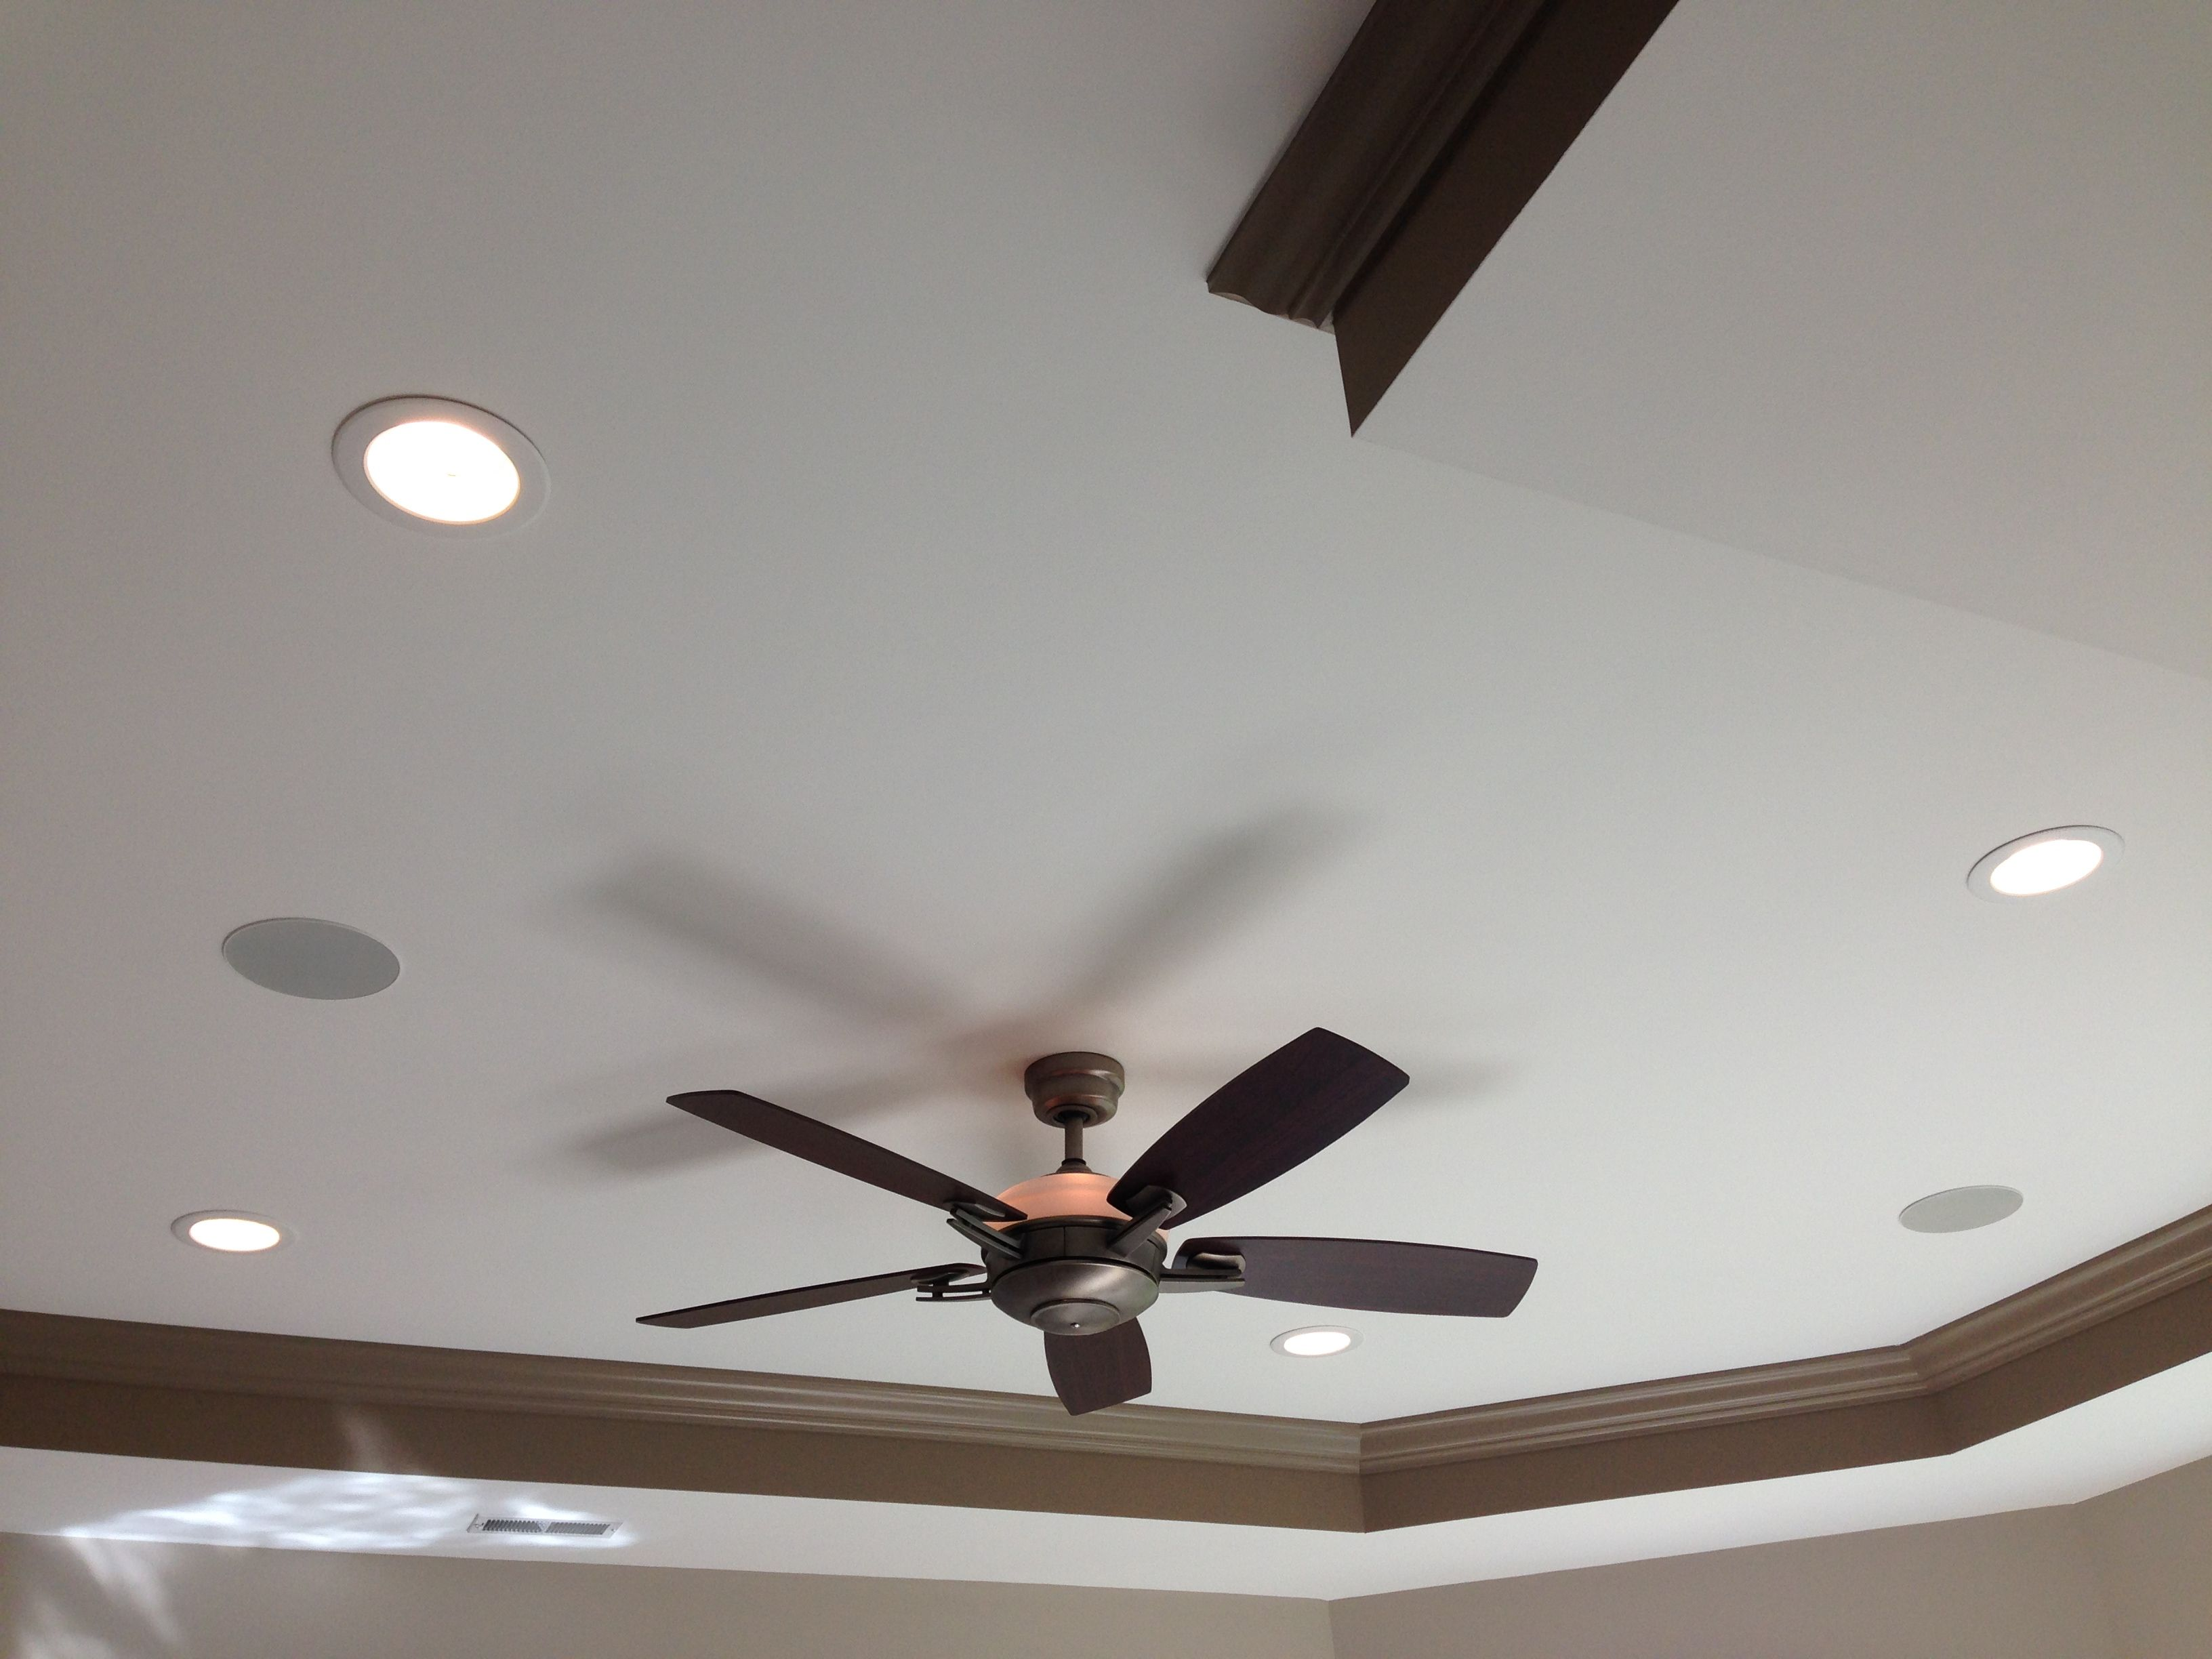 One Fan Two Speakers And Four Recessed Lights Featured On A Trey Ceiling All Installed By Tpro Electric Trey Ceiling Recessed Lighting House Inspiration